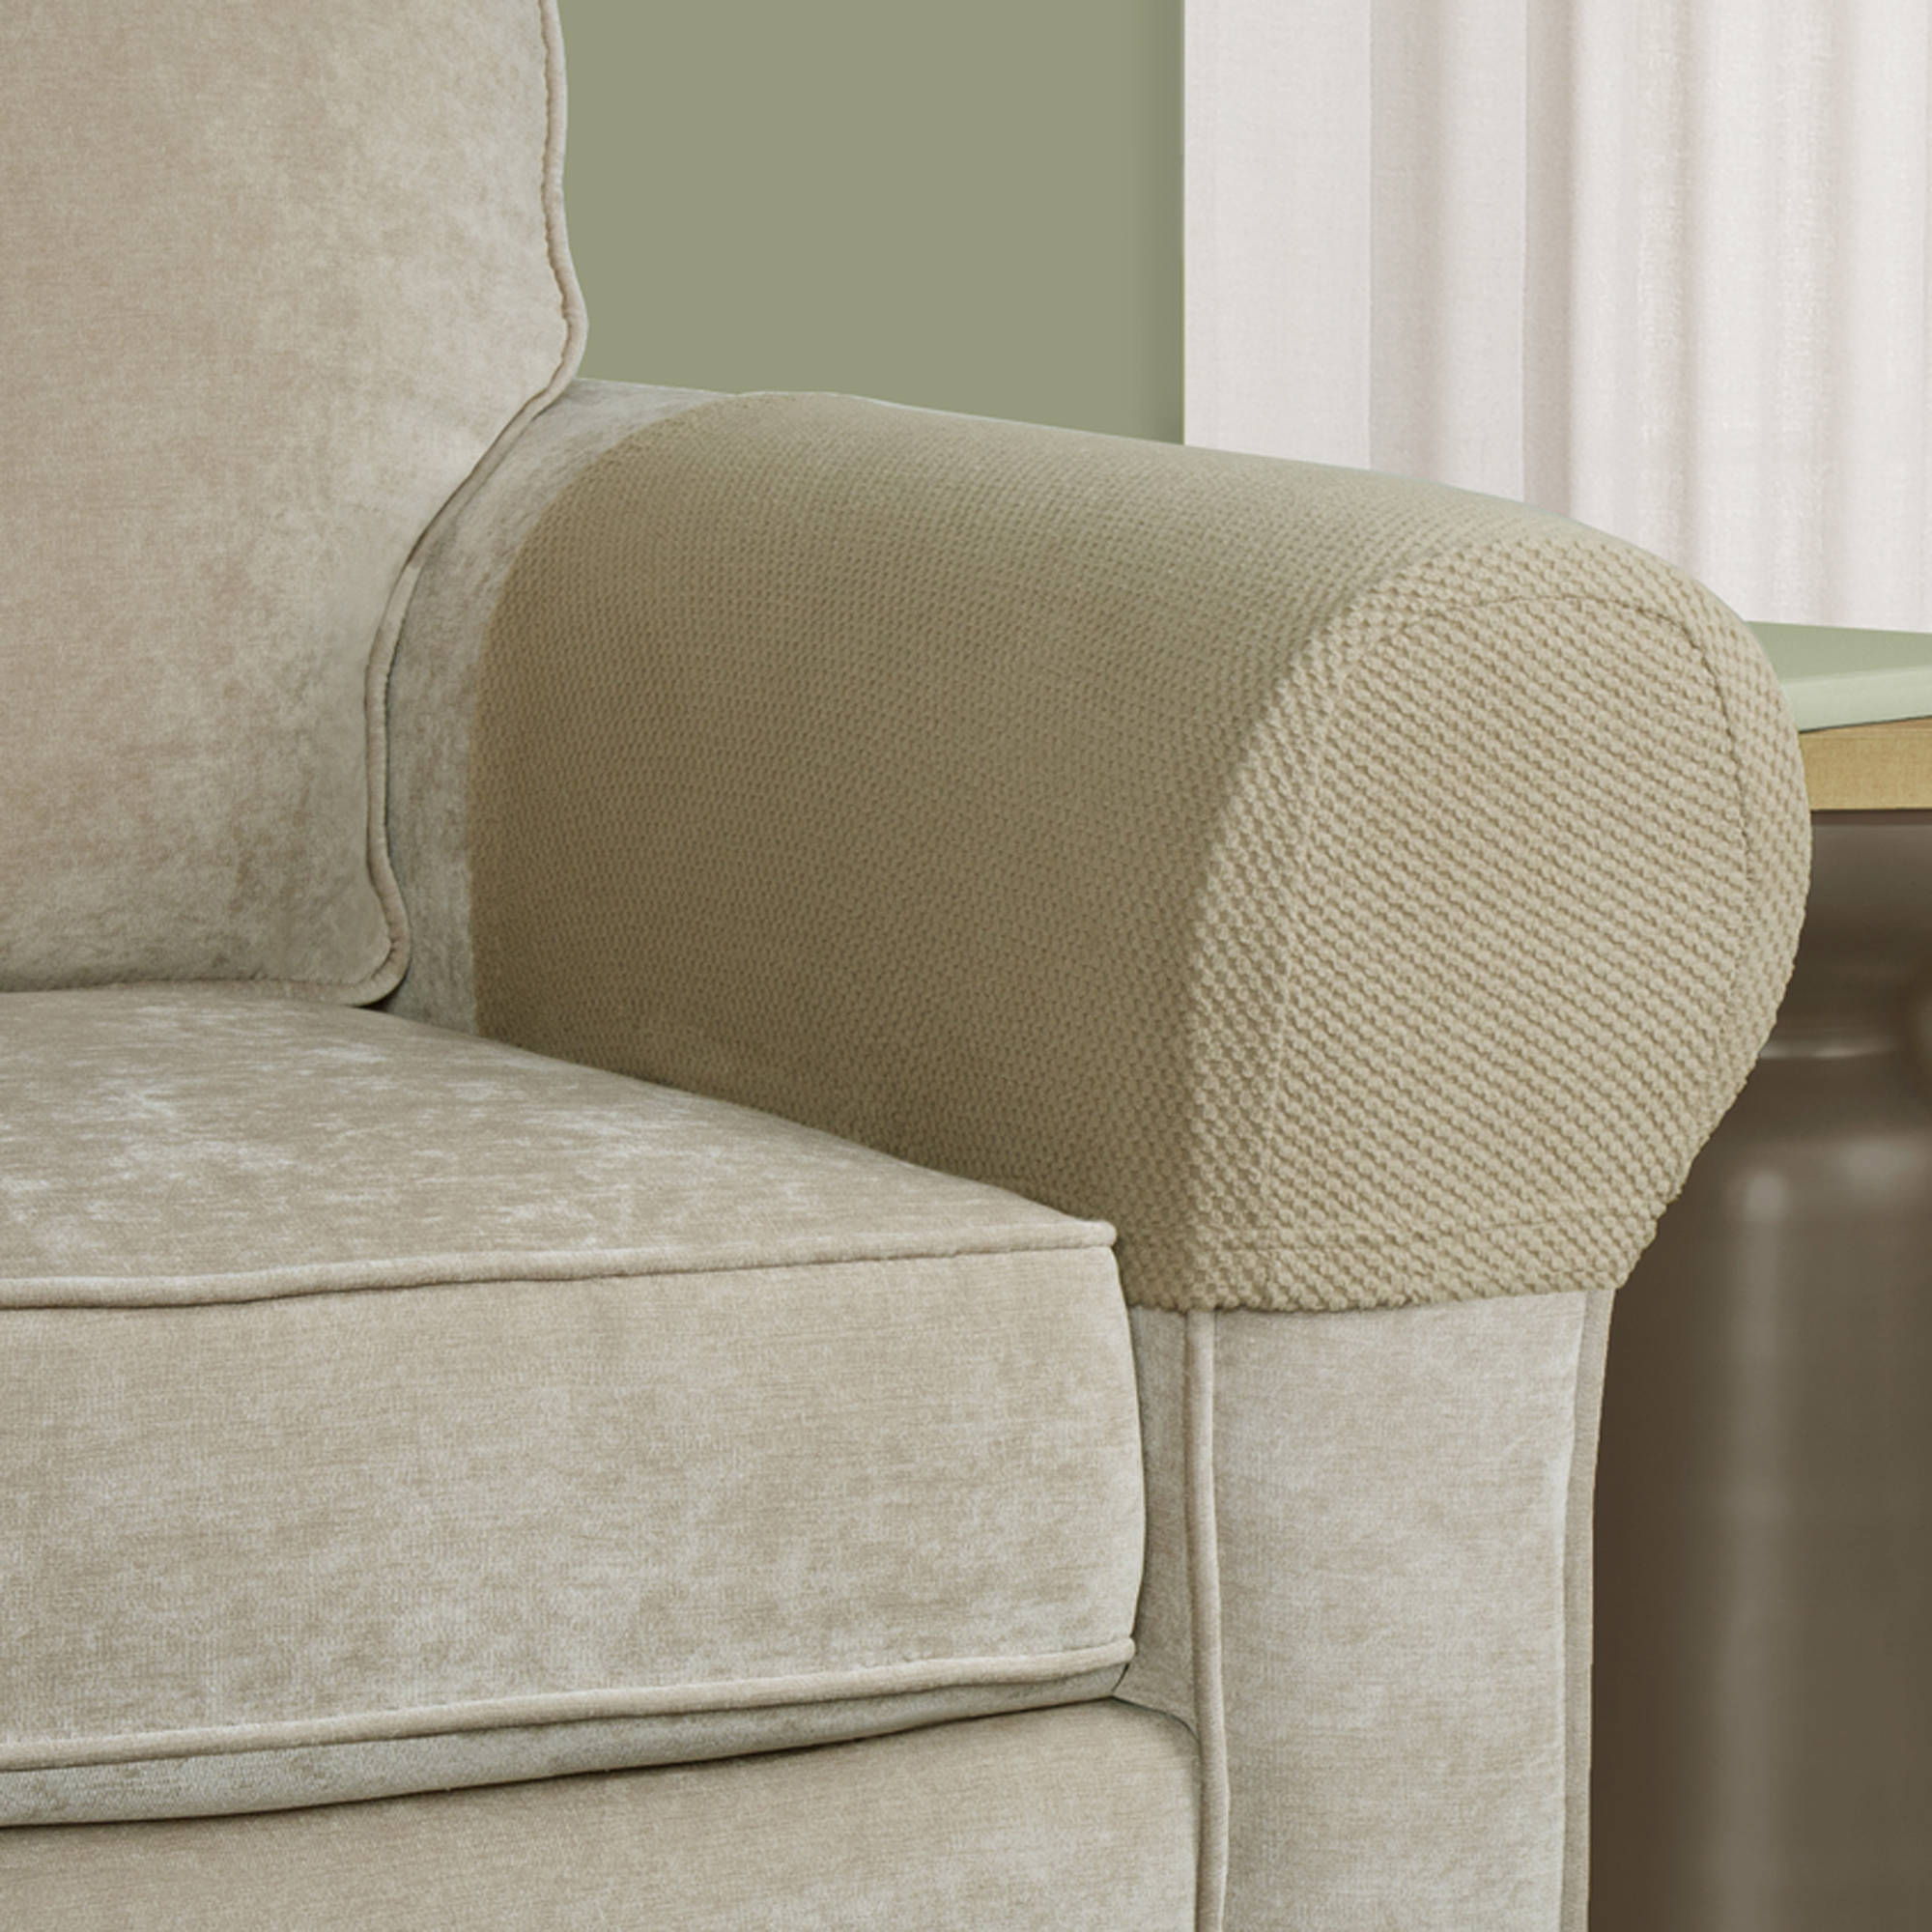 Famous Furniture: Sofa Covers At Walmart For A Slightly Loose And Casual With Sofa And Chair Slipcovers (View 4 of 20)